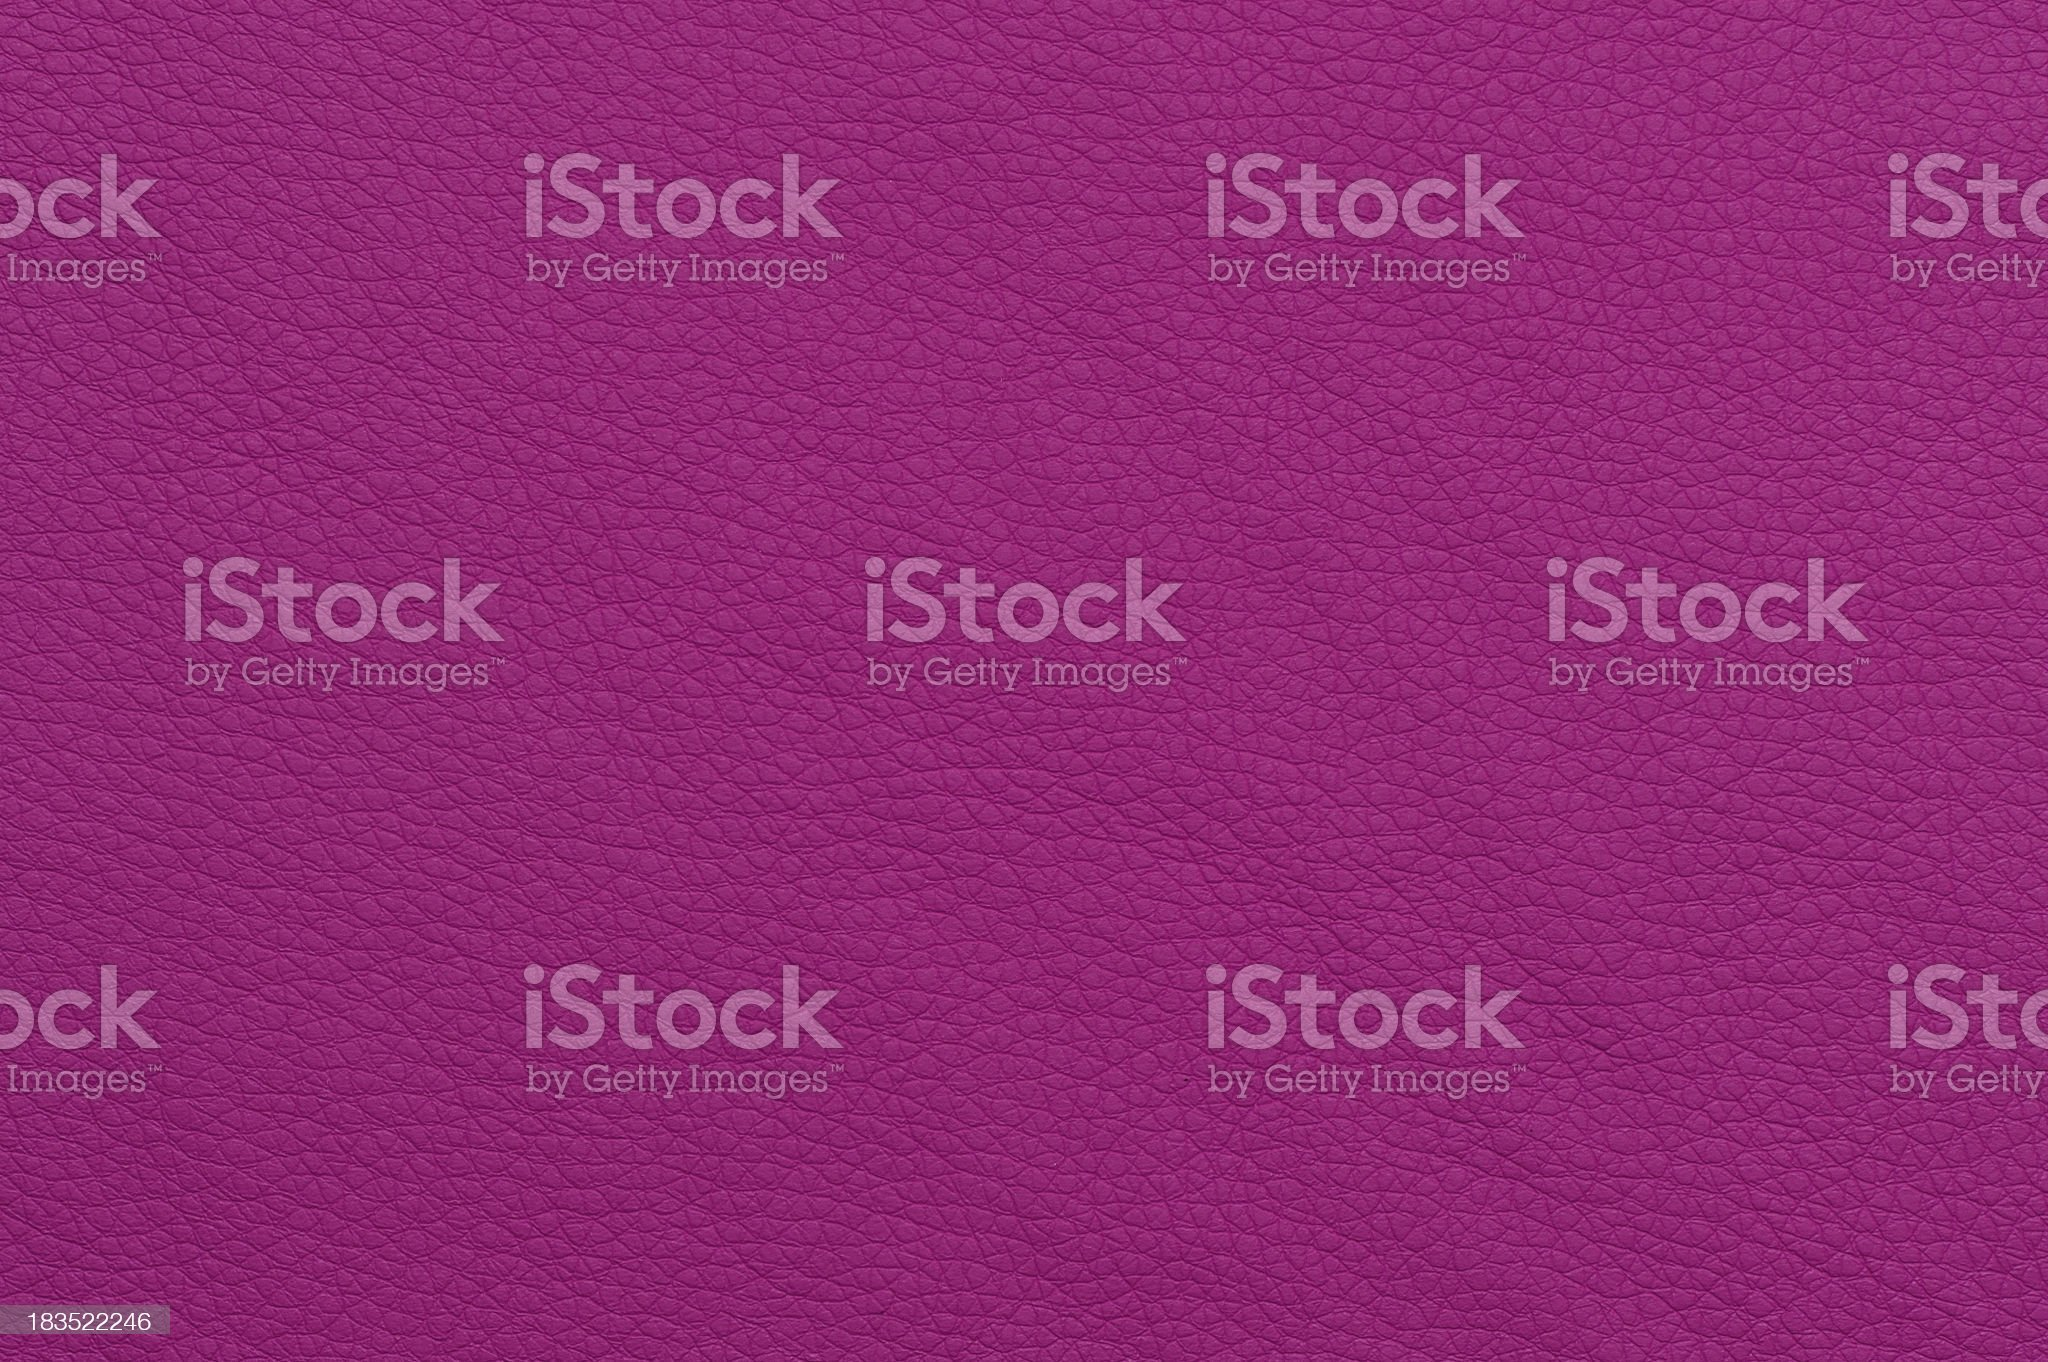 Magenta Artificial Leather Background Texture royalty-free stock photo